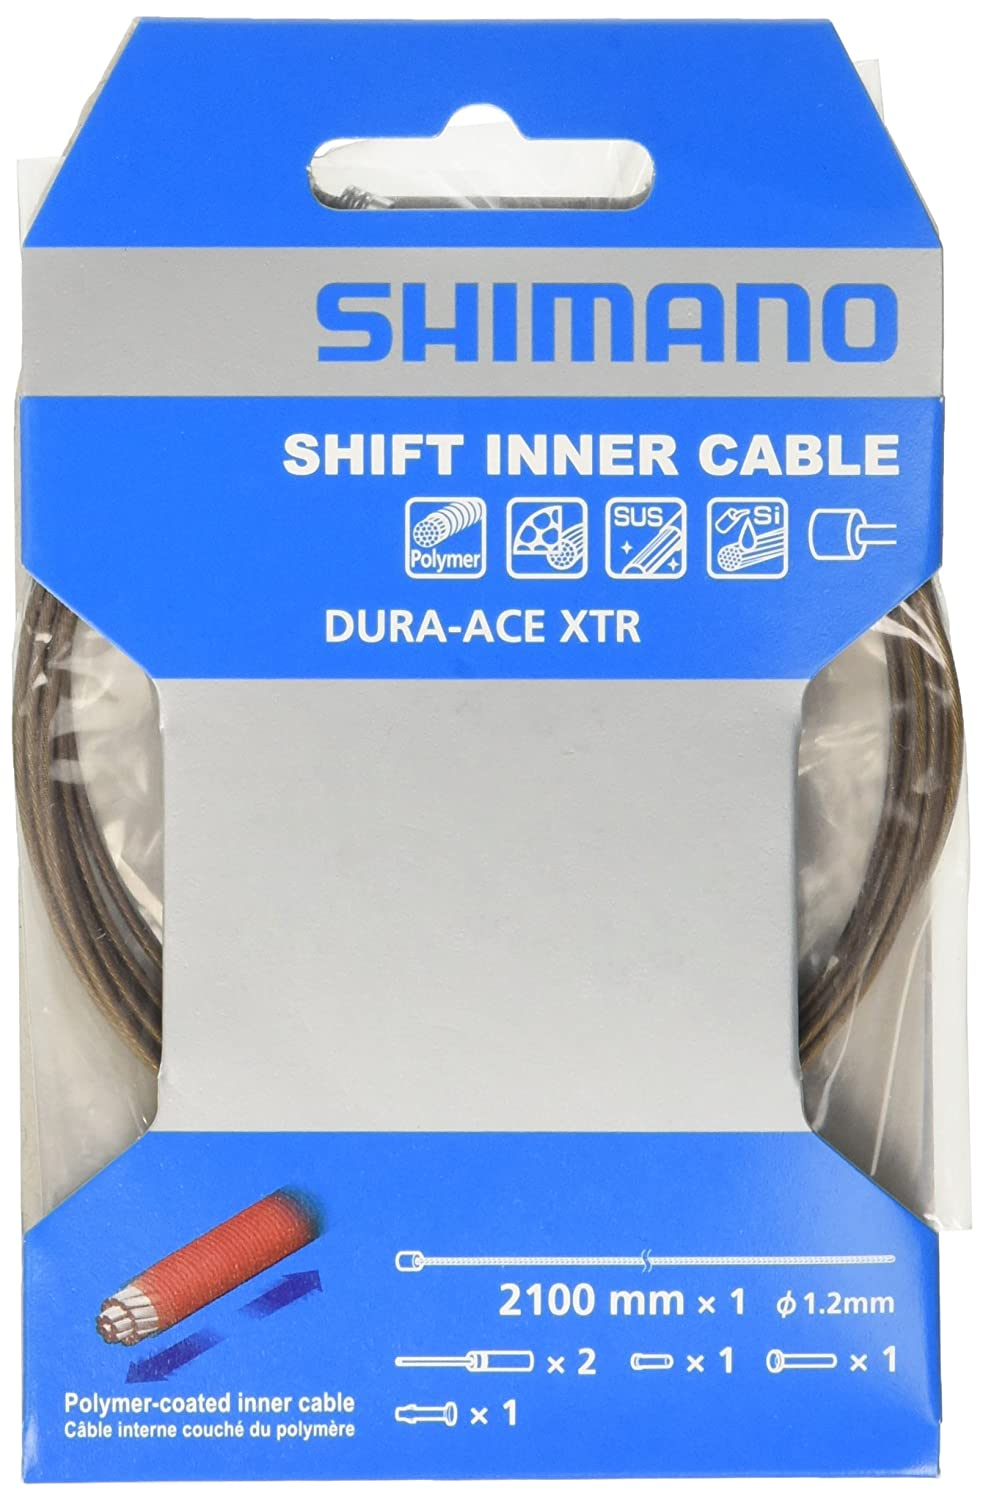 1.2 x 2100mm Shimano Dura-Ace Stainless Steel Polymer-Coated Shift Inner Cable